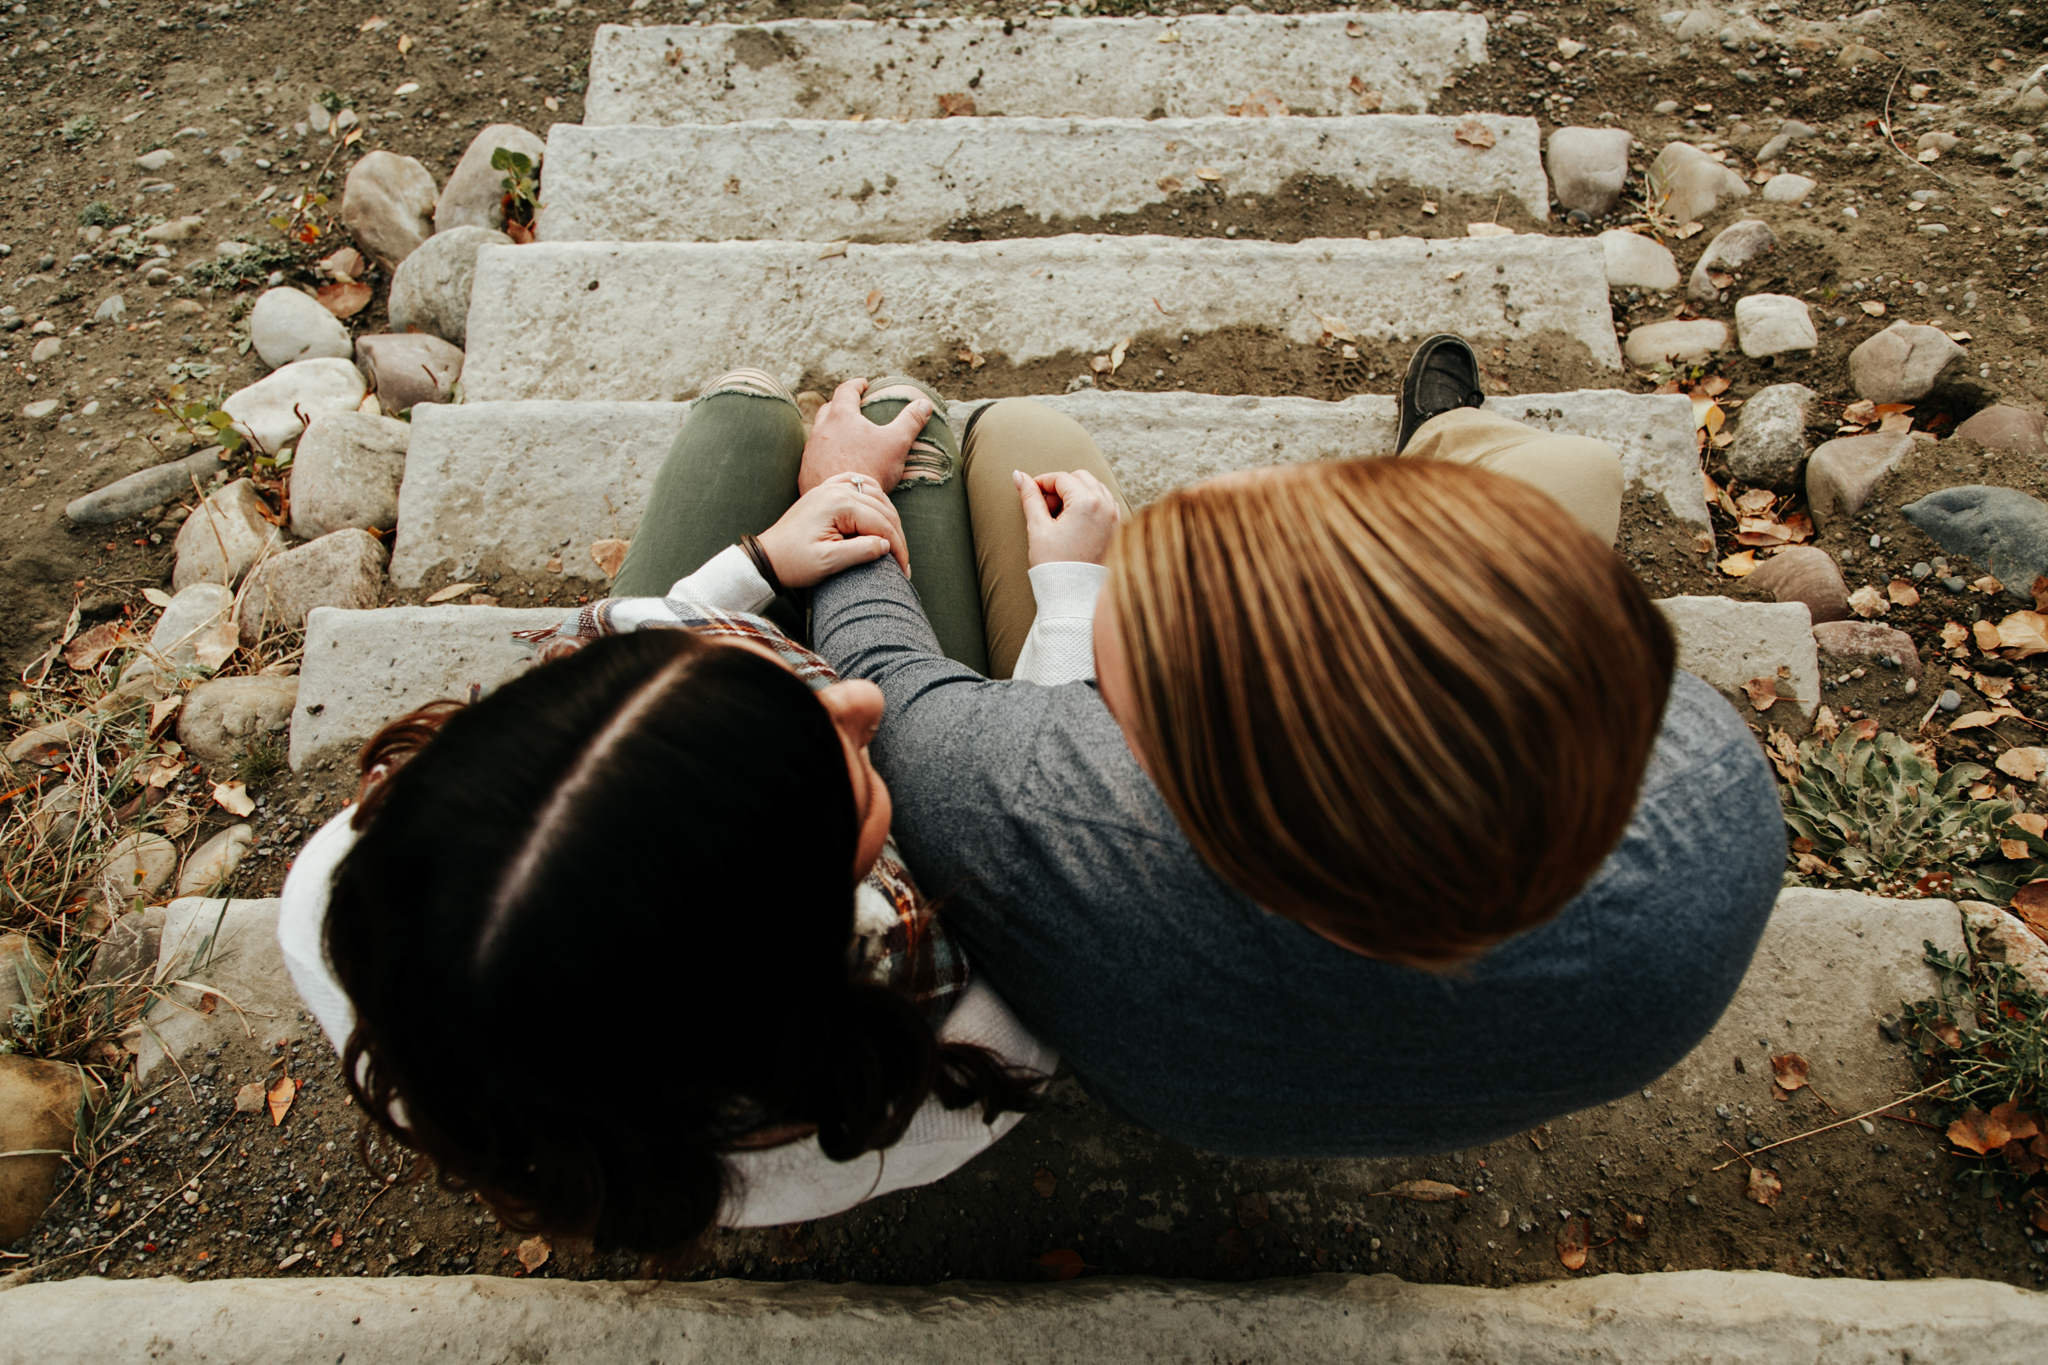 lethbridge-photographer-love-and-be-loved-photography-christy-bryan-fall-autumn-engagement-photo-image-picture-42.jpg